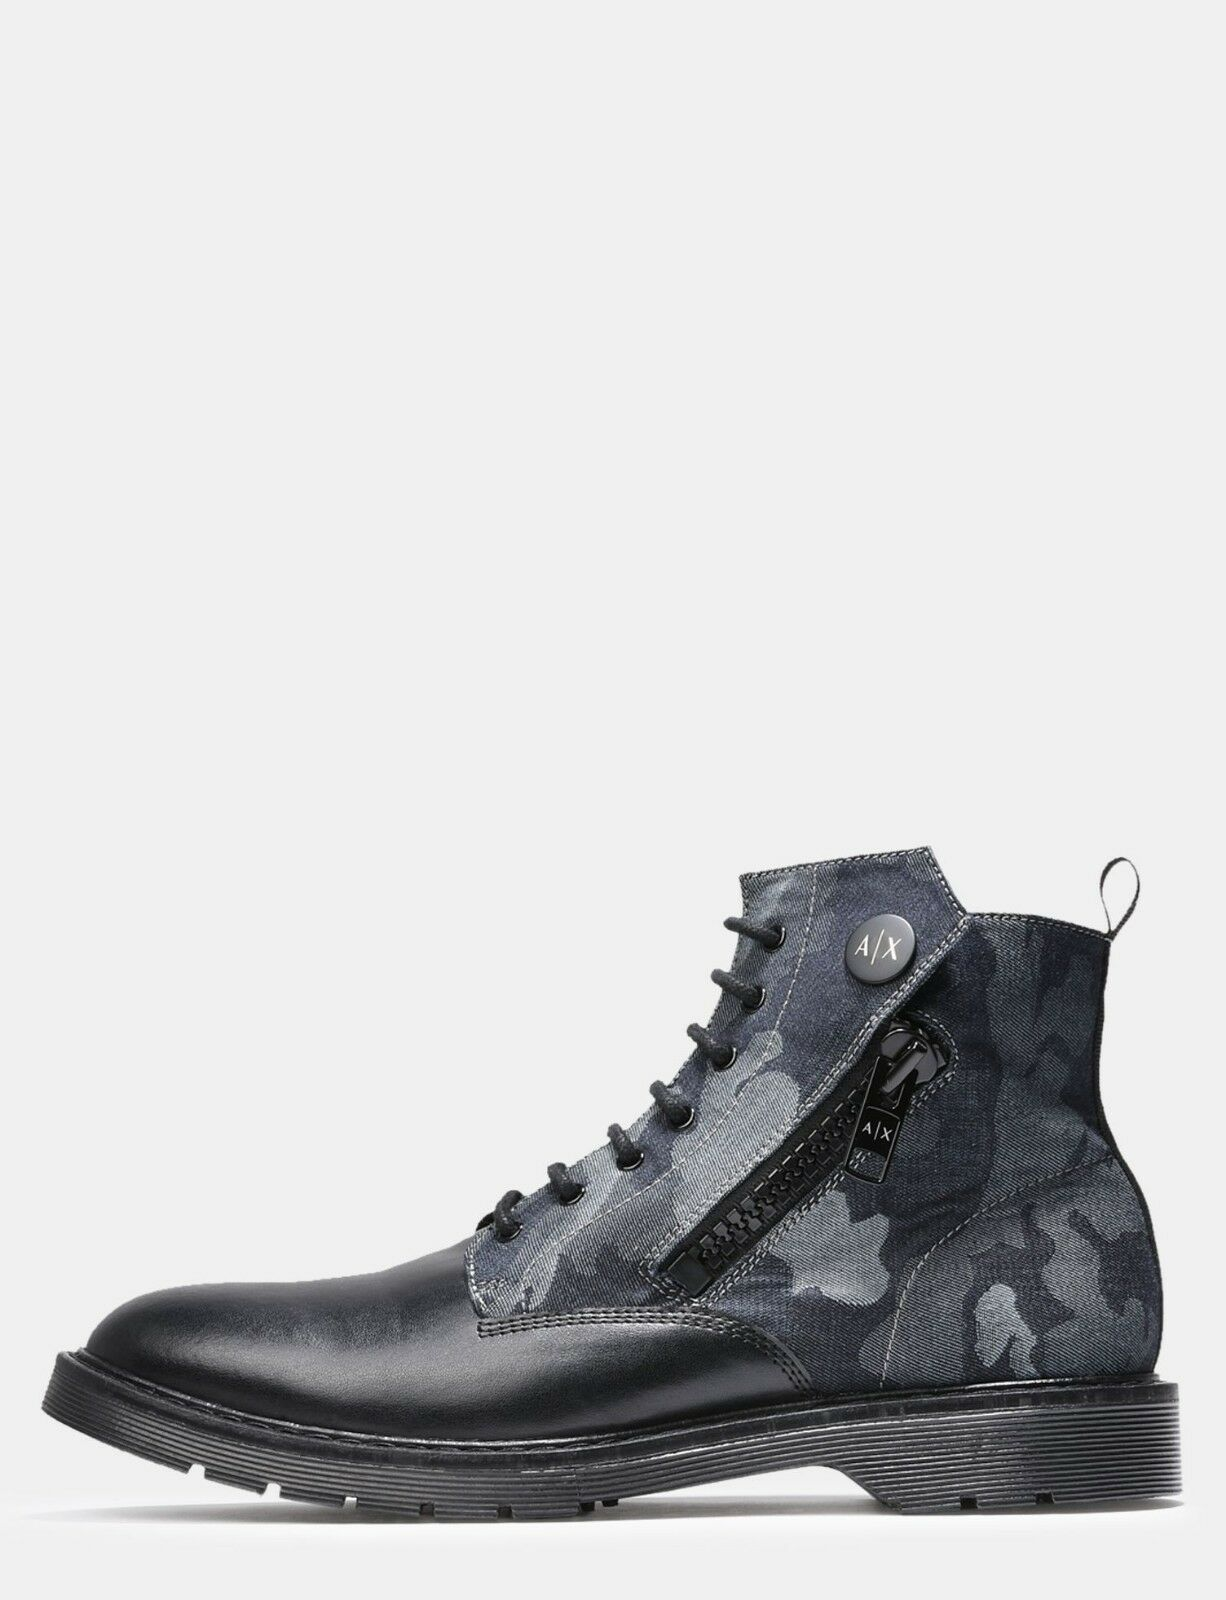 Armani Exchange Authentic A|X ZIPPERED NAVY CAMO BOOTS BLACK NWT